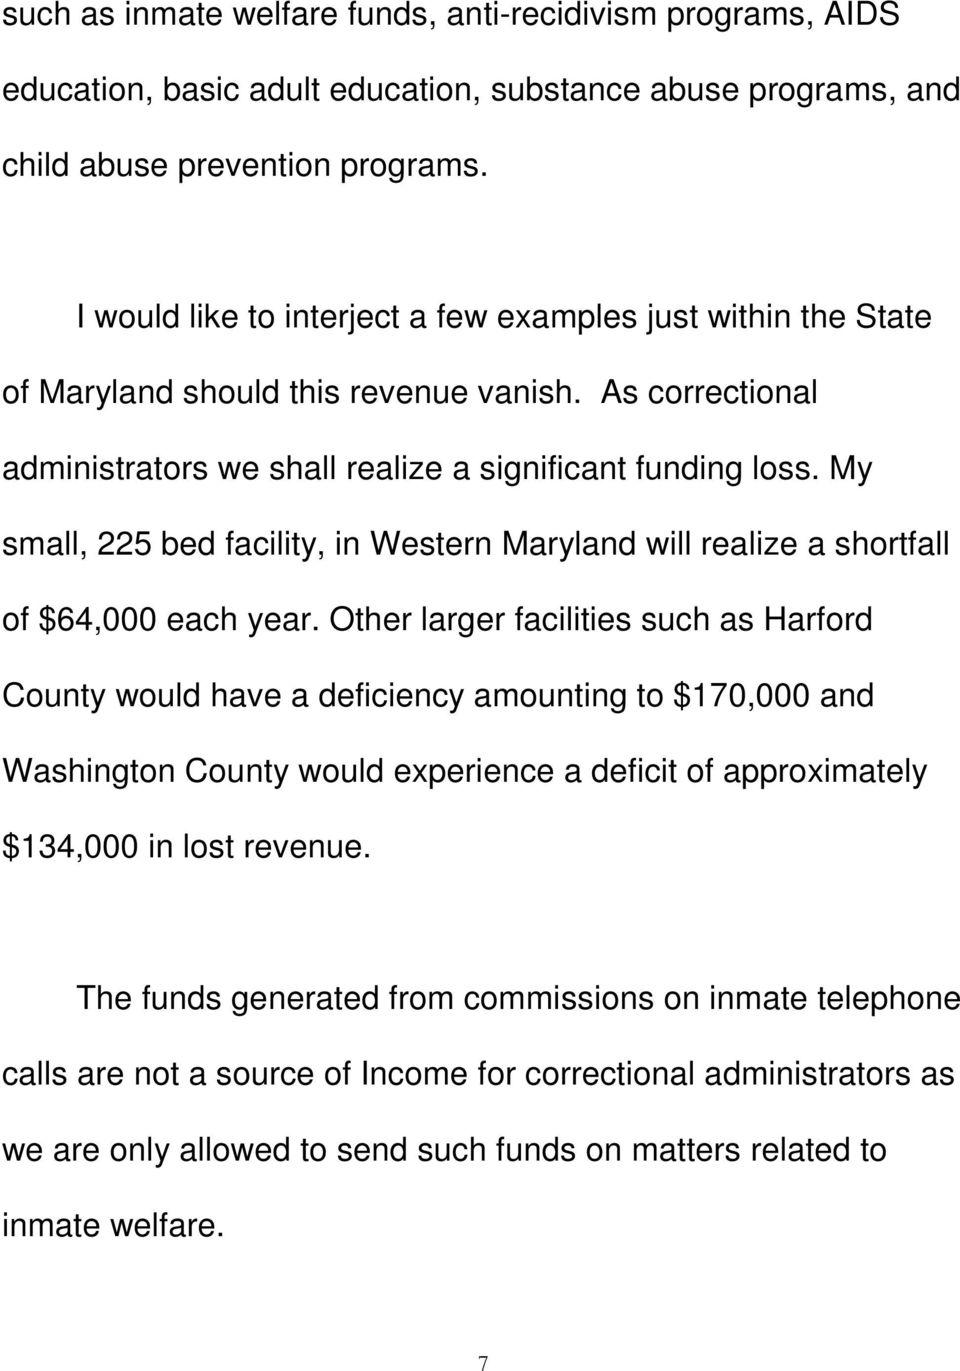 My small, 225 bed facility, in Western Maryland will realize a shortfall of $64,000 each year.